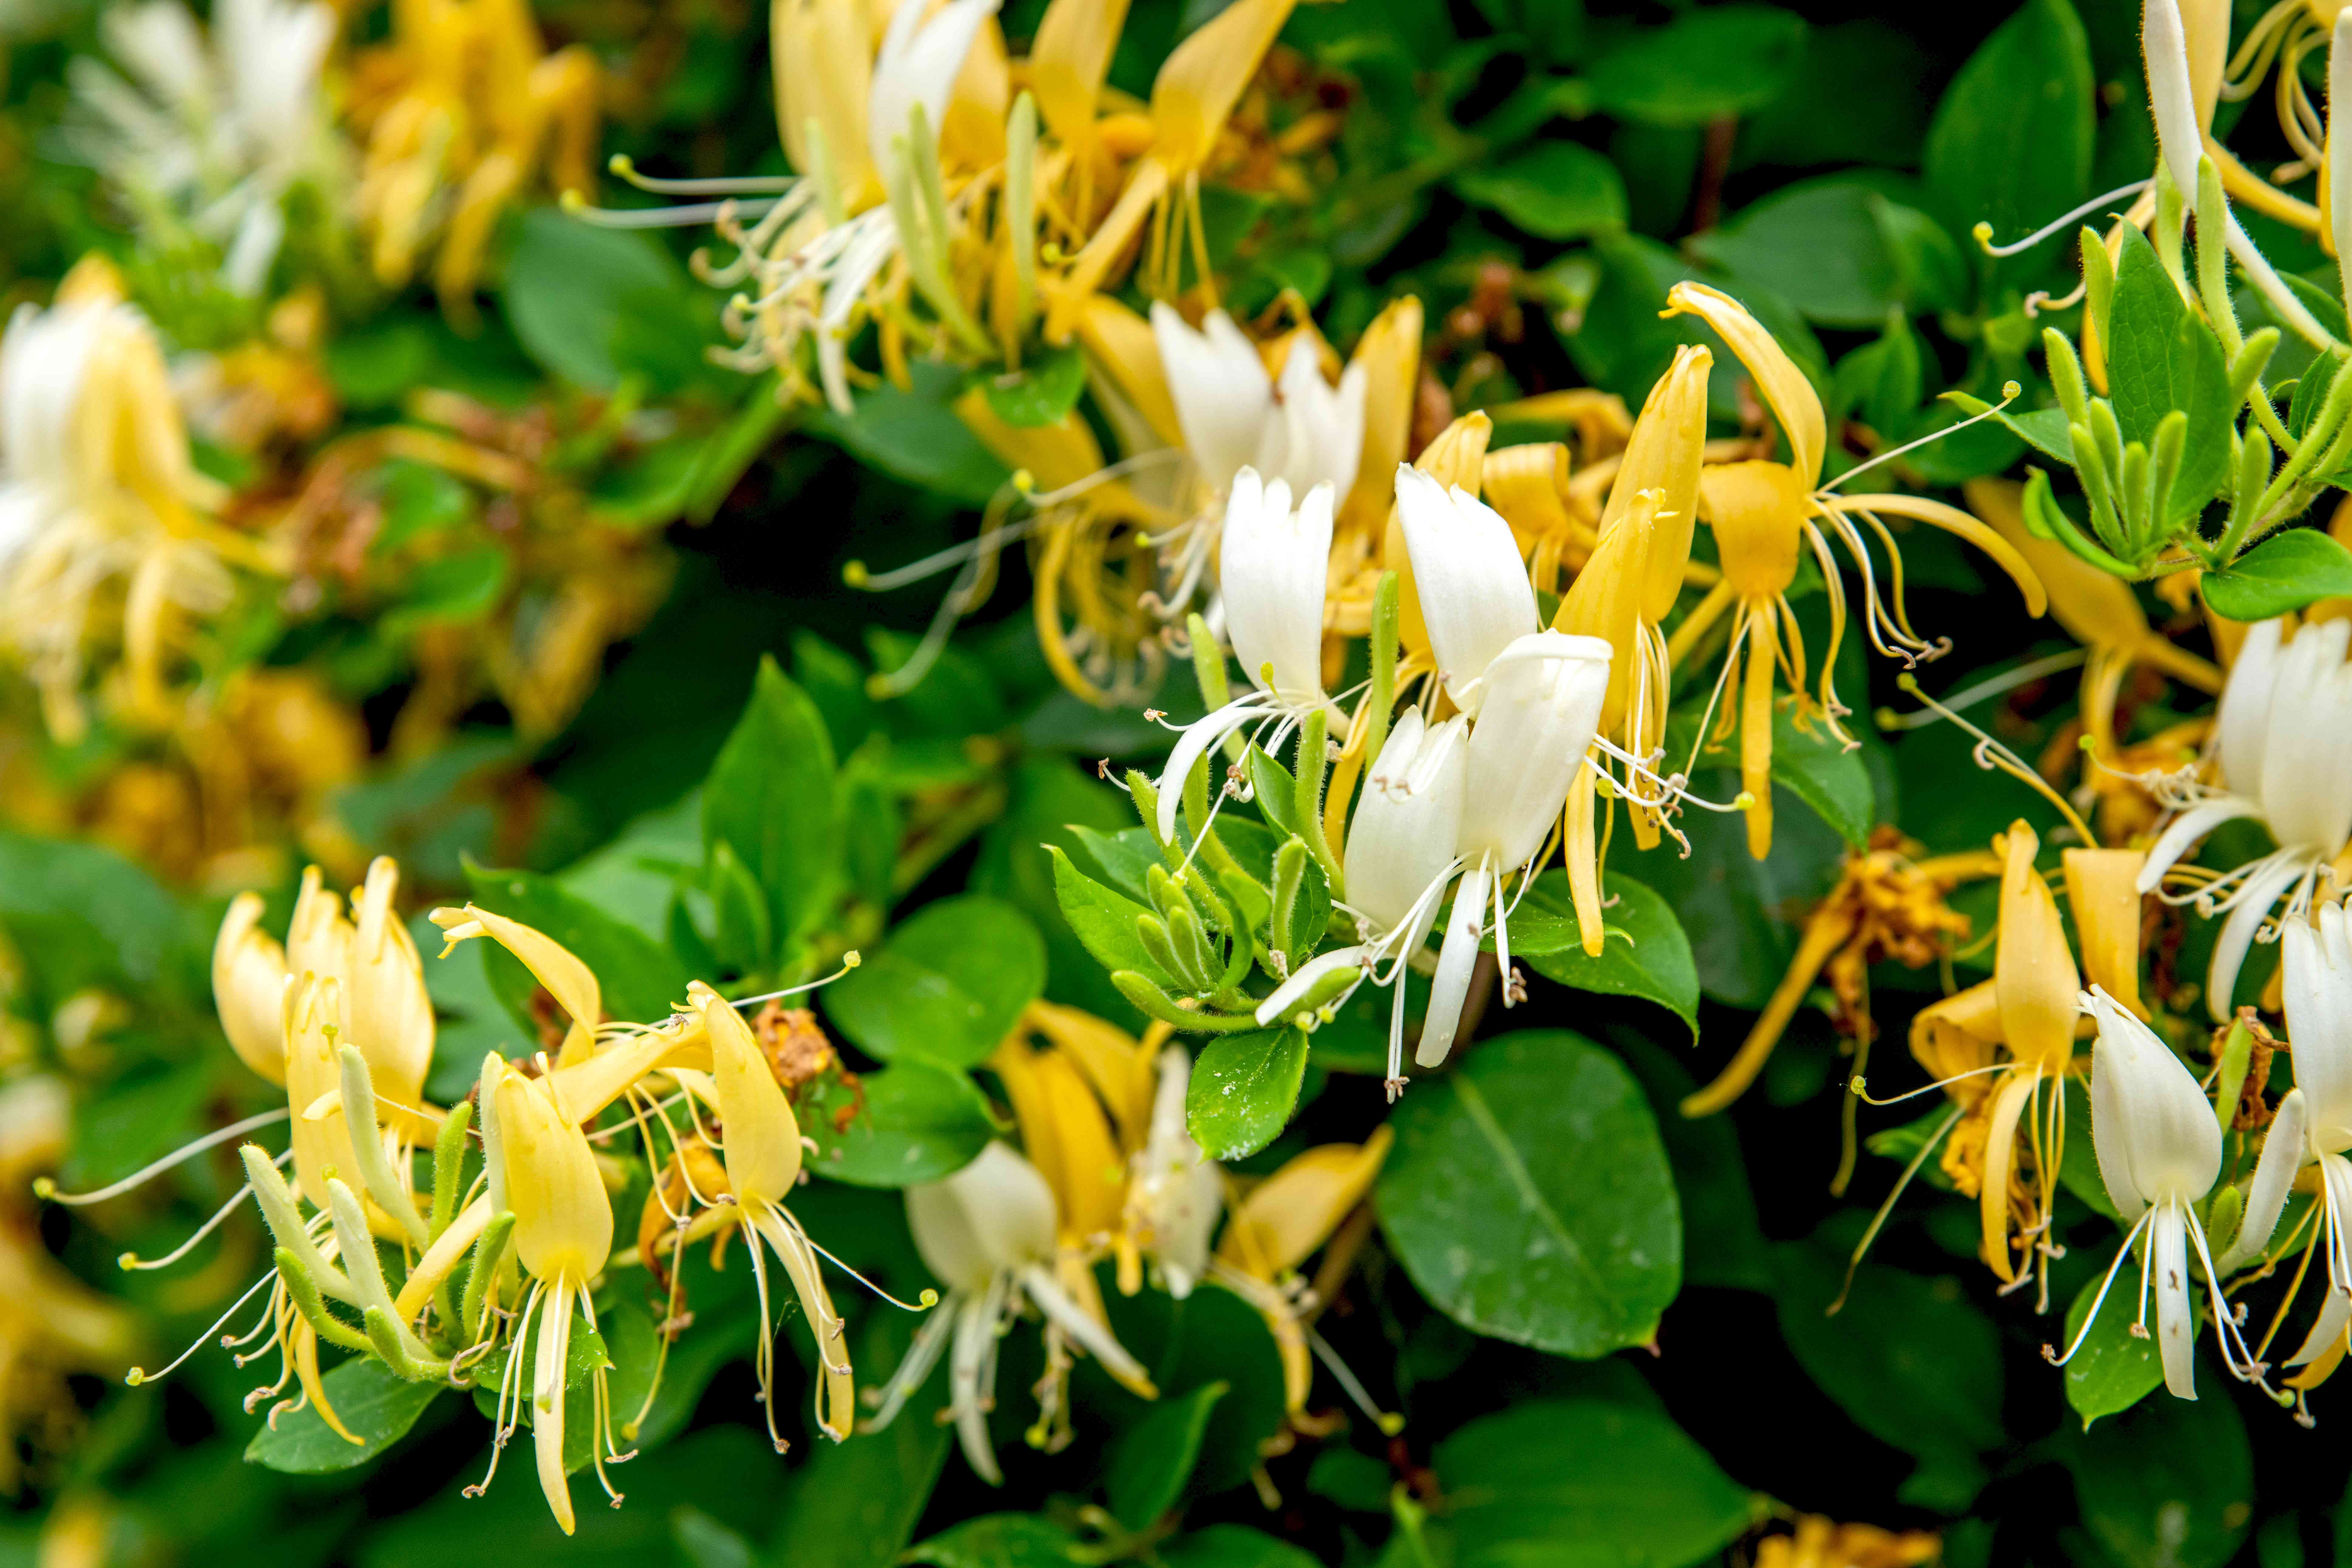 Japanese honeysuckle plant with yellow and white bi-petaled flowers between leaves